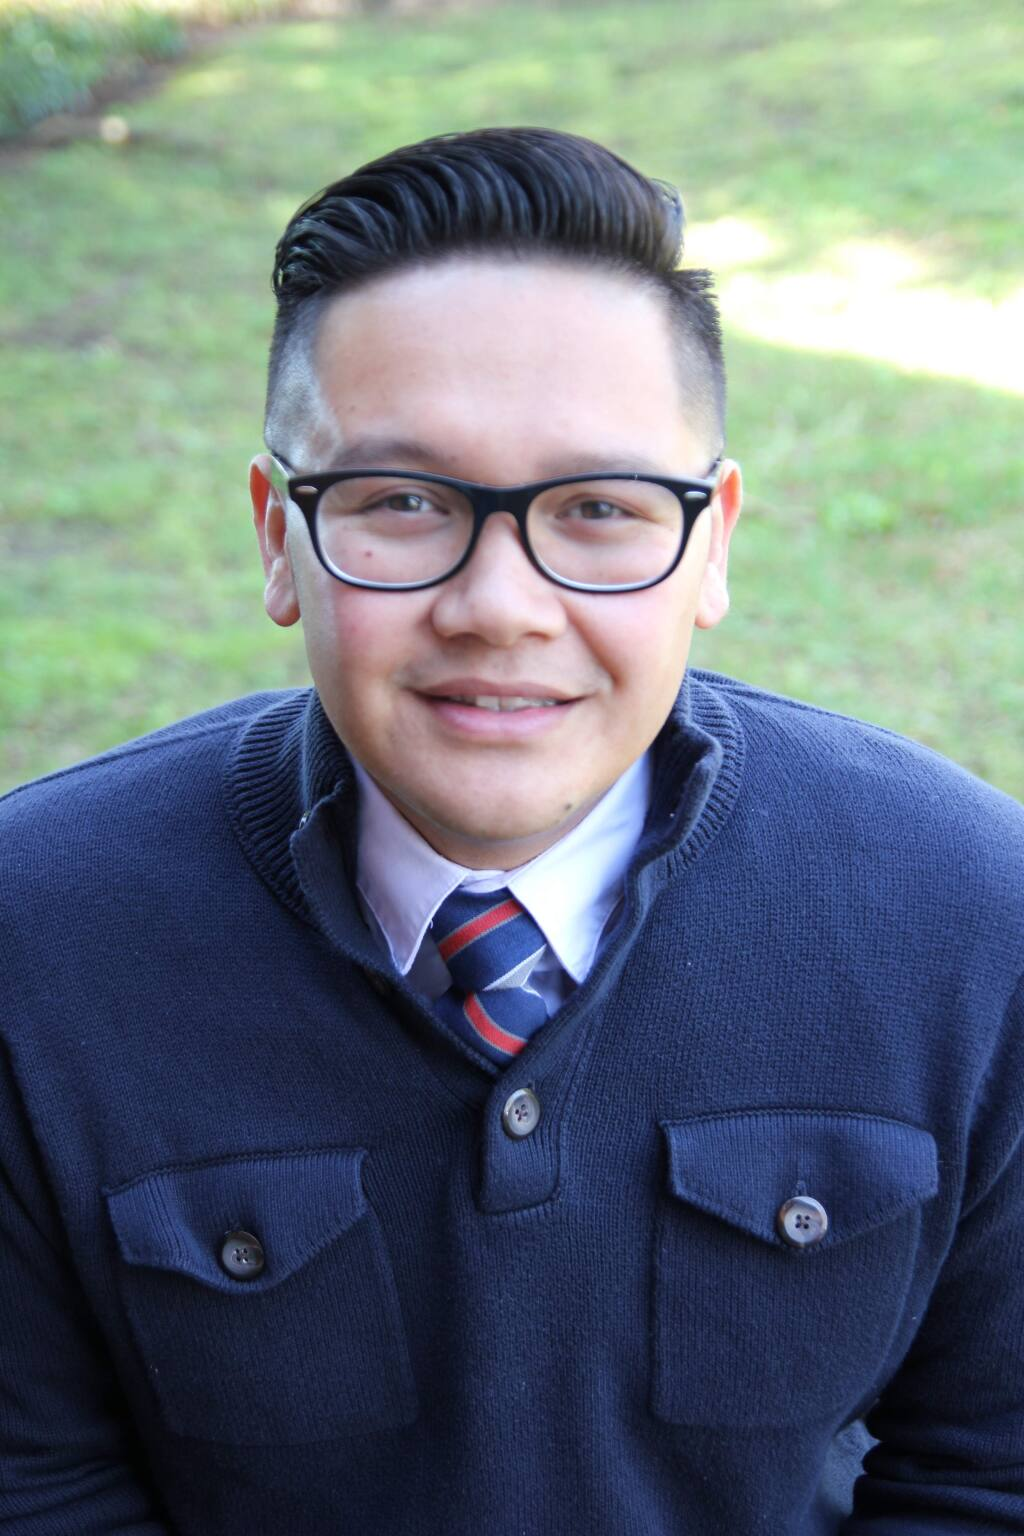 JayJay Rico, 35, director of social enterprise for Becoming Independent in Santa Rosa, is one of North Bay Business Journal's Forty Under 40 notable young professionals for 2019. (PROVIDED PHOTO)